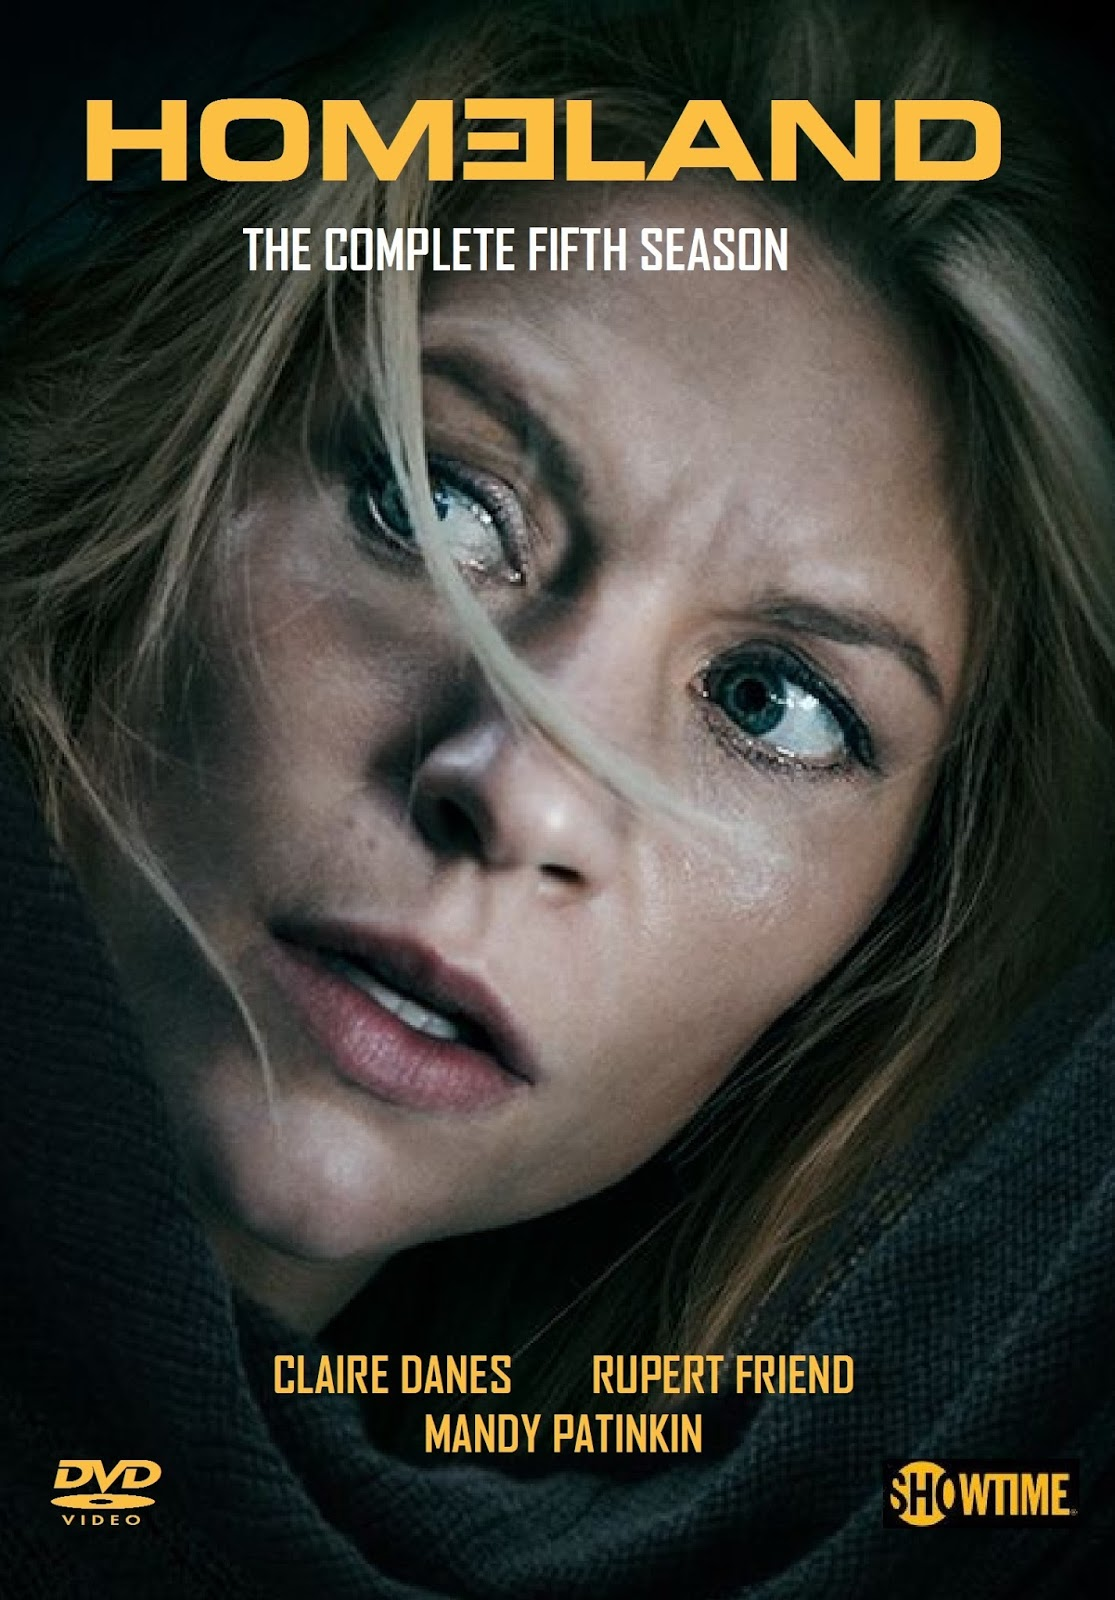 Homeland [Season 5] [2015] [DVDR] [NTSC] [Latino]